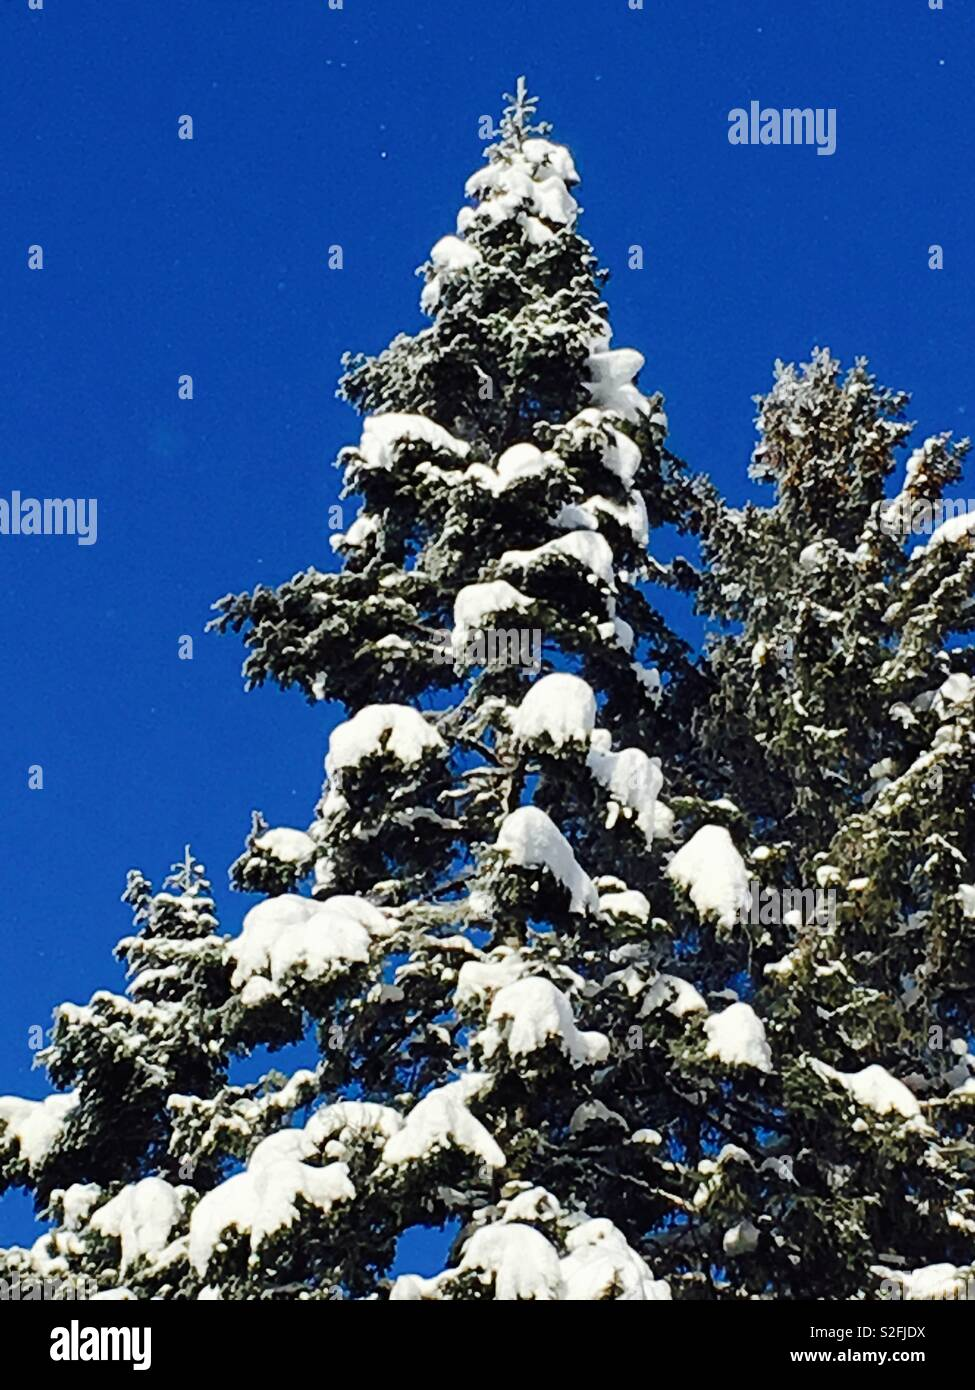 Conifers covered in snow - Stock Image